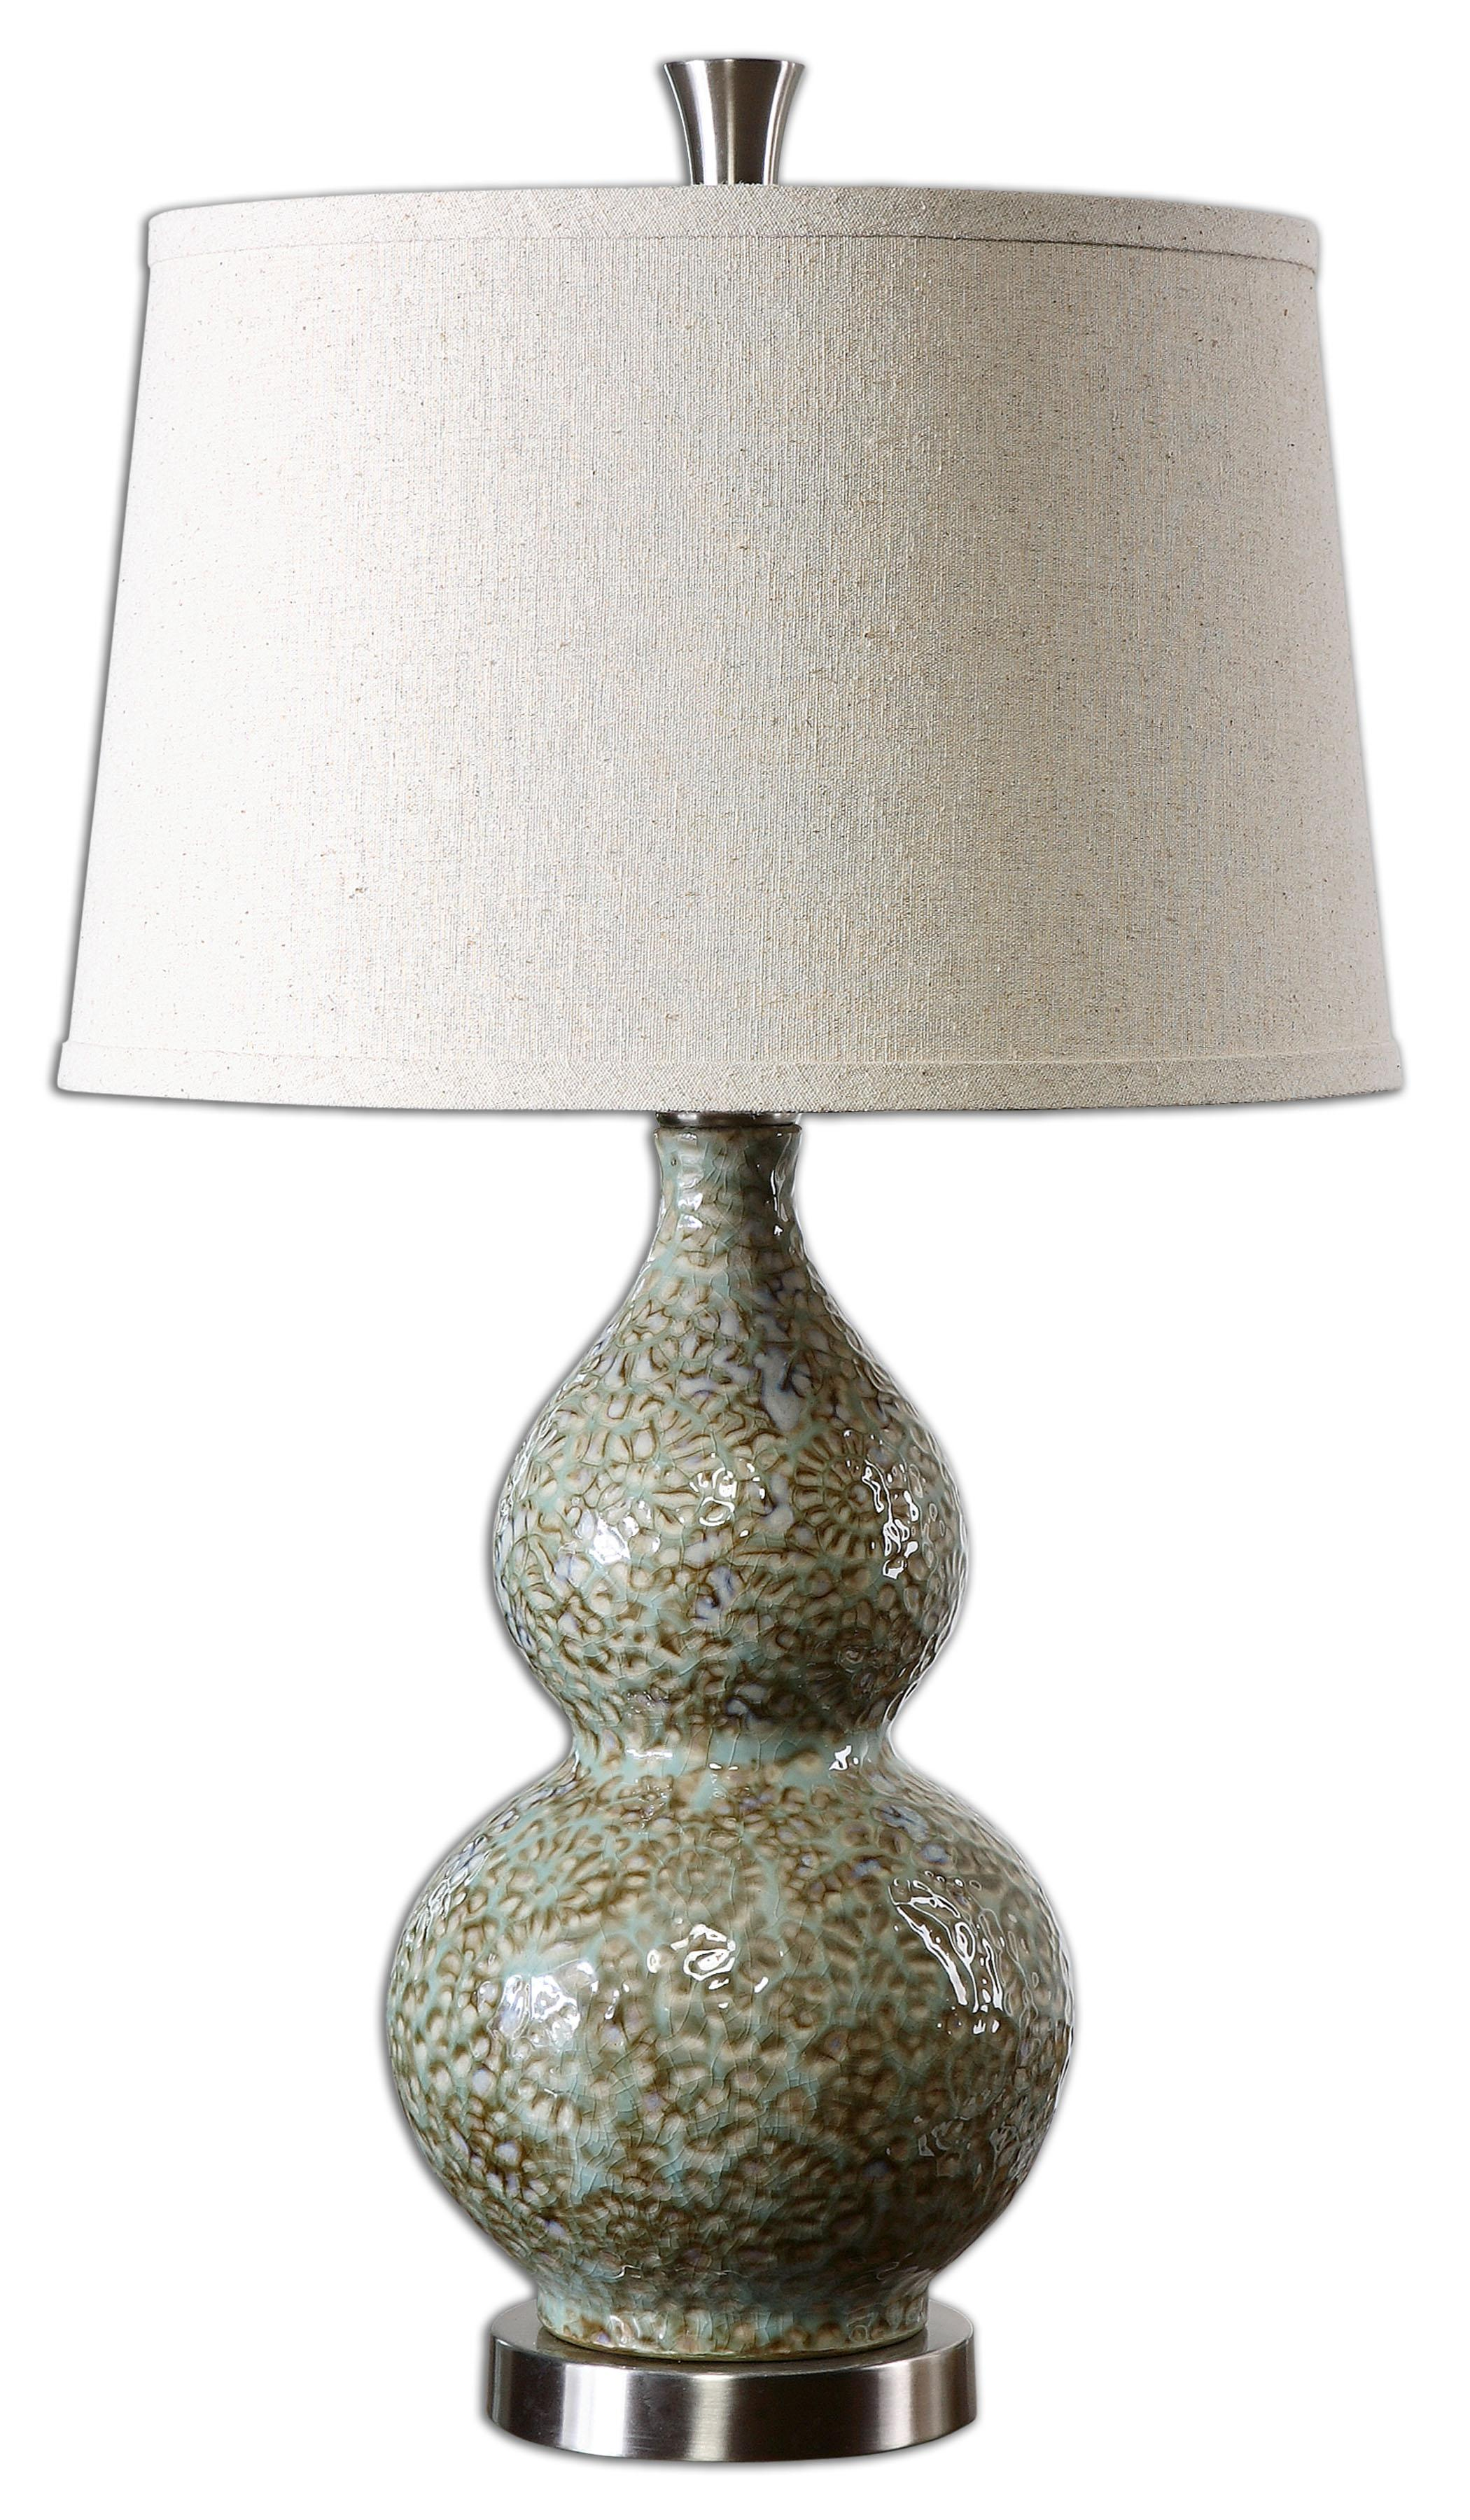 Hatton Ceramic Lamp